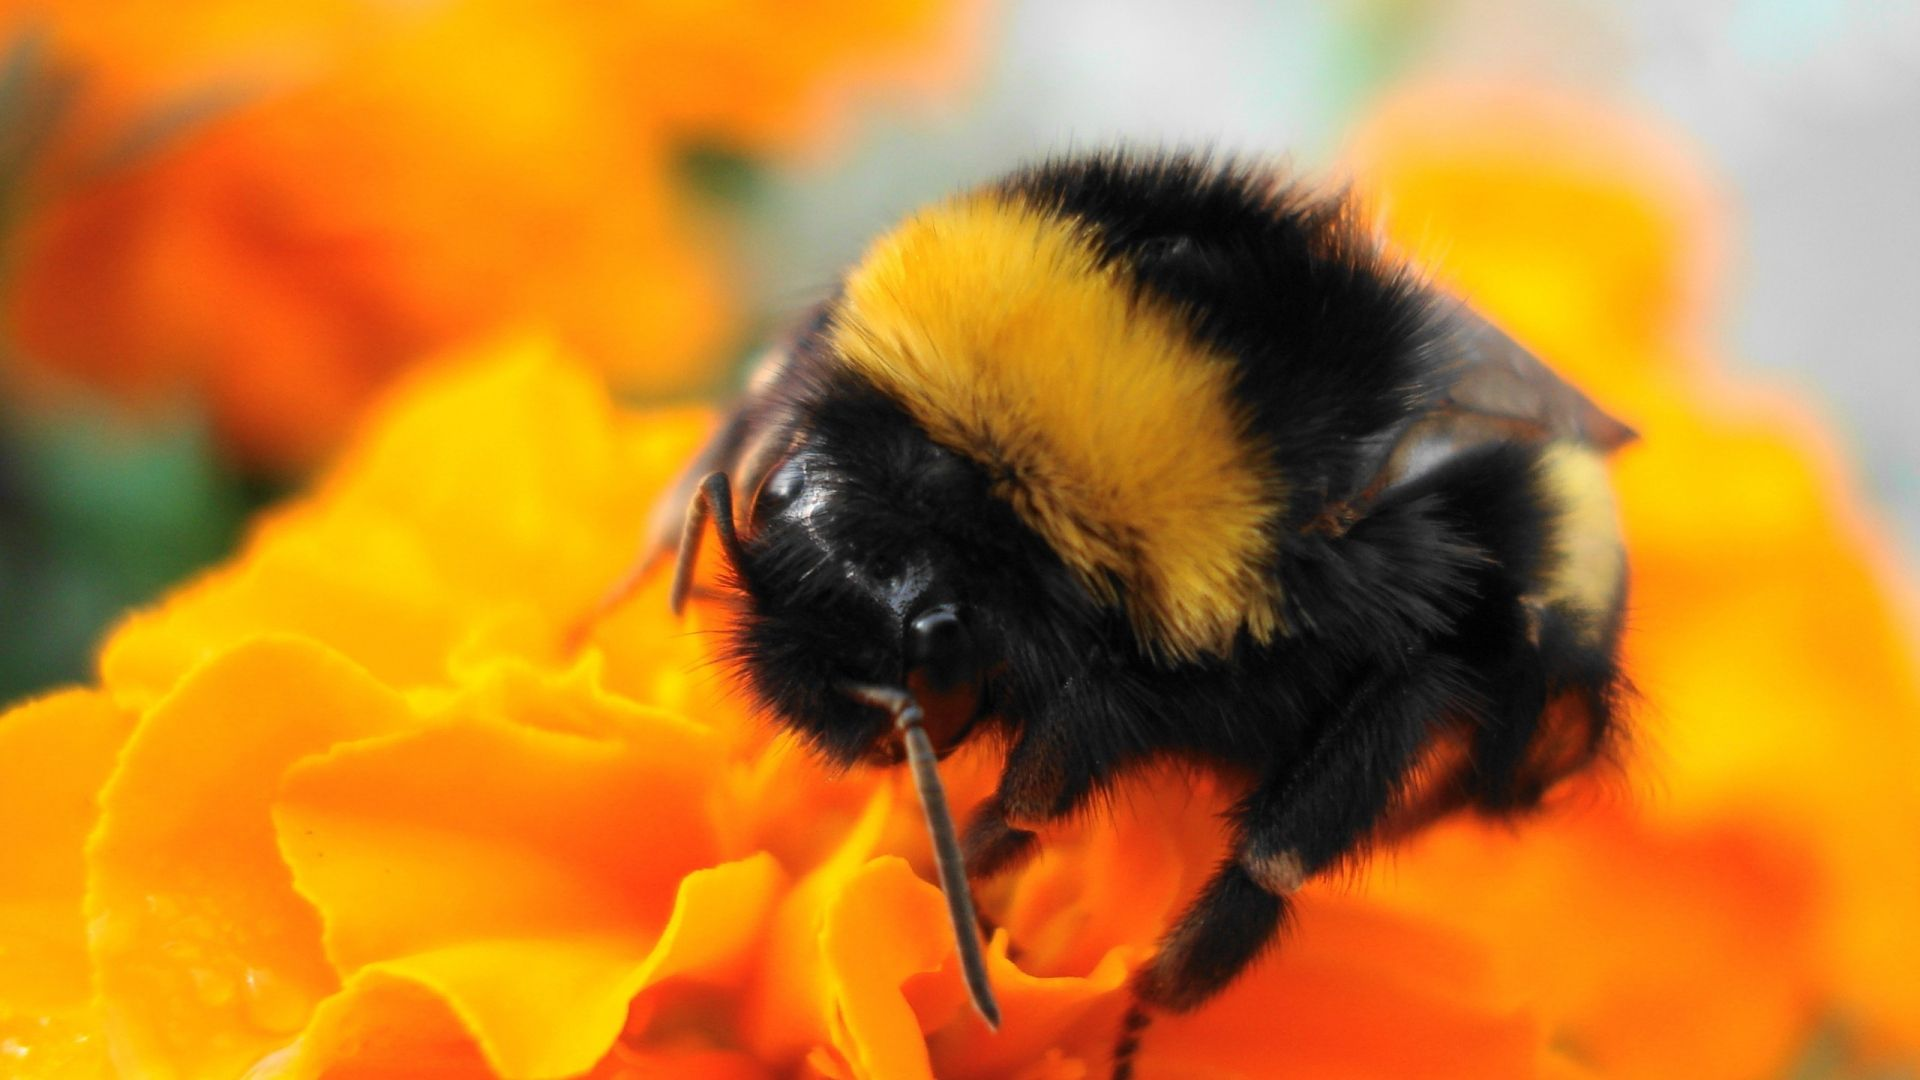 Bumble Bee Insect X Wallpapers Bumble bee insect, Bee on